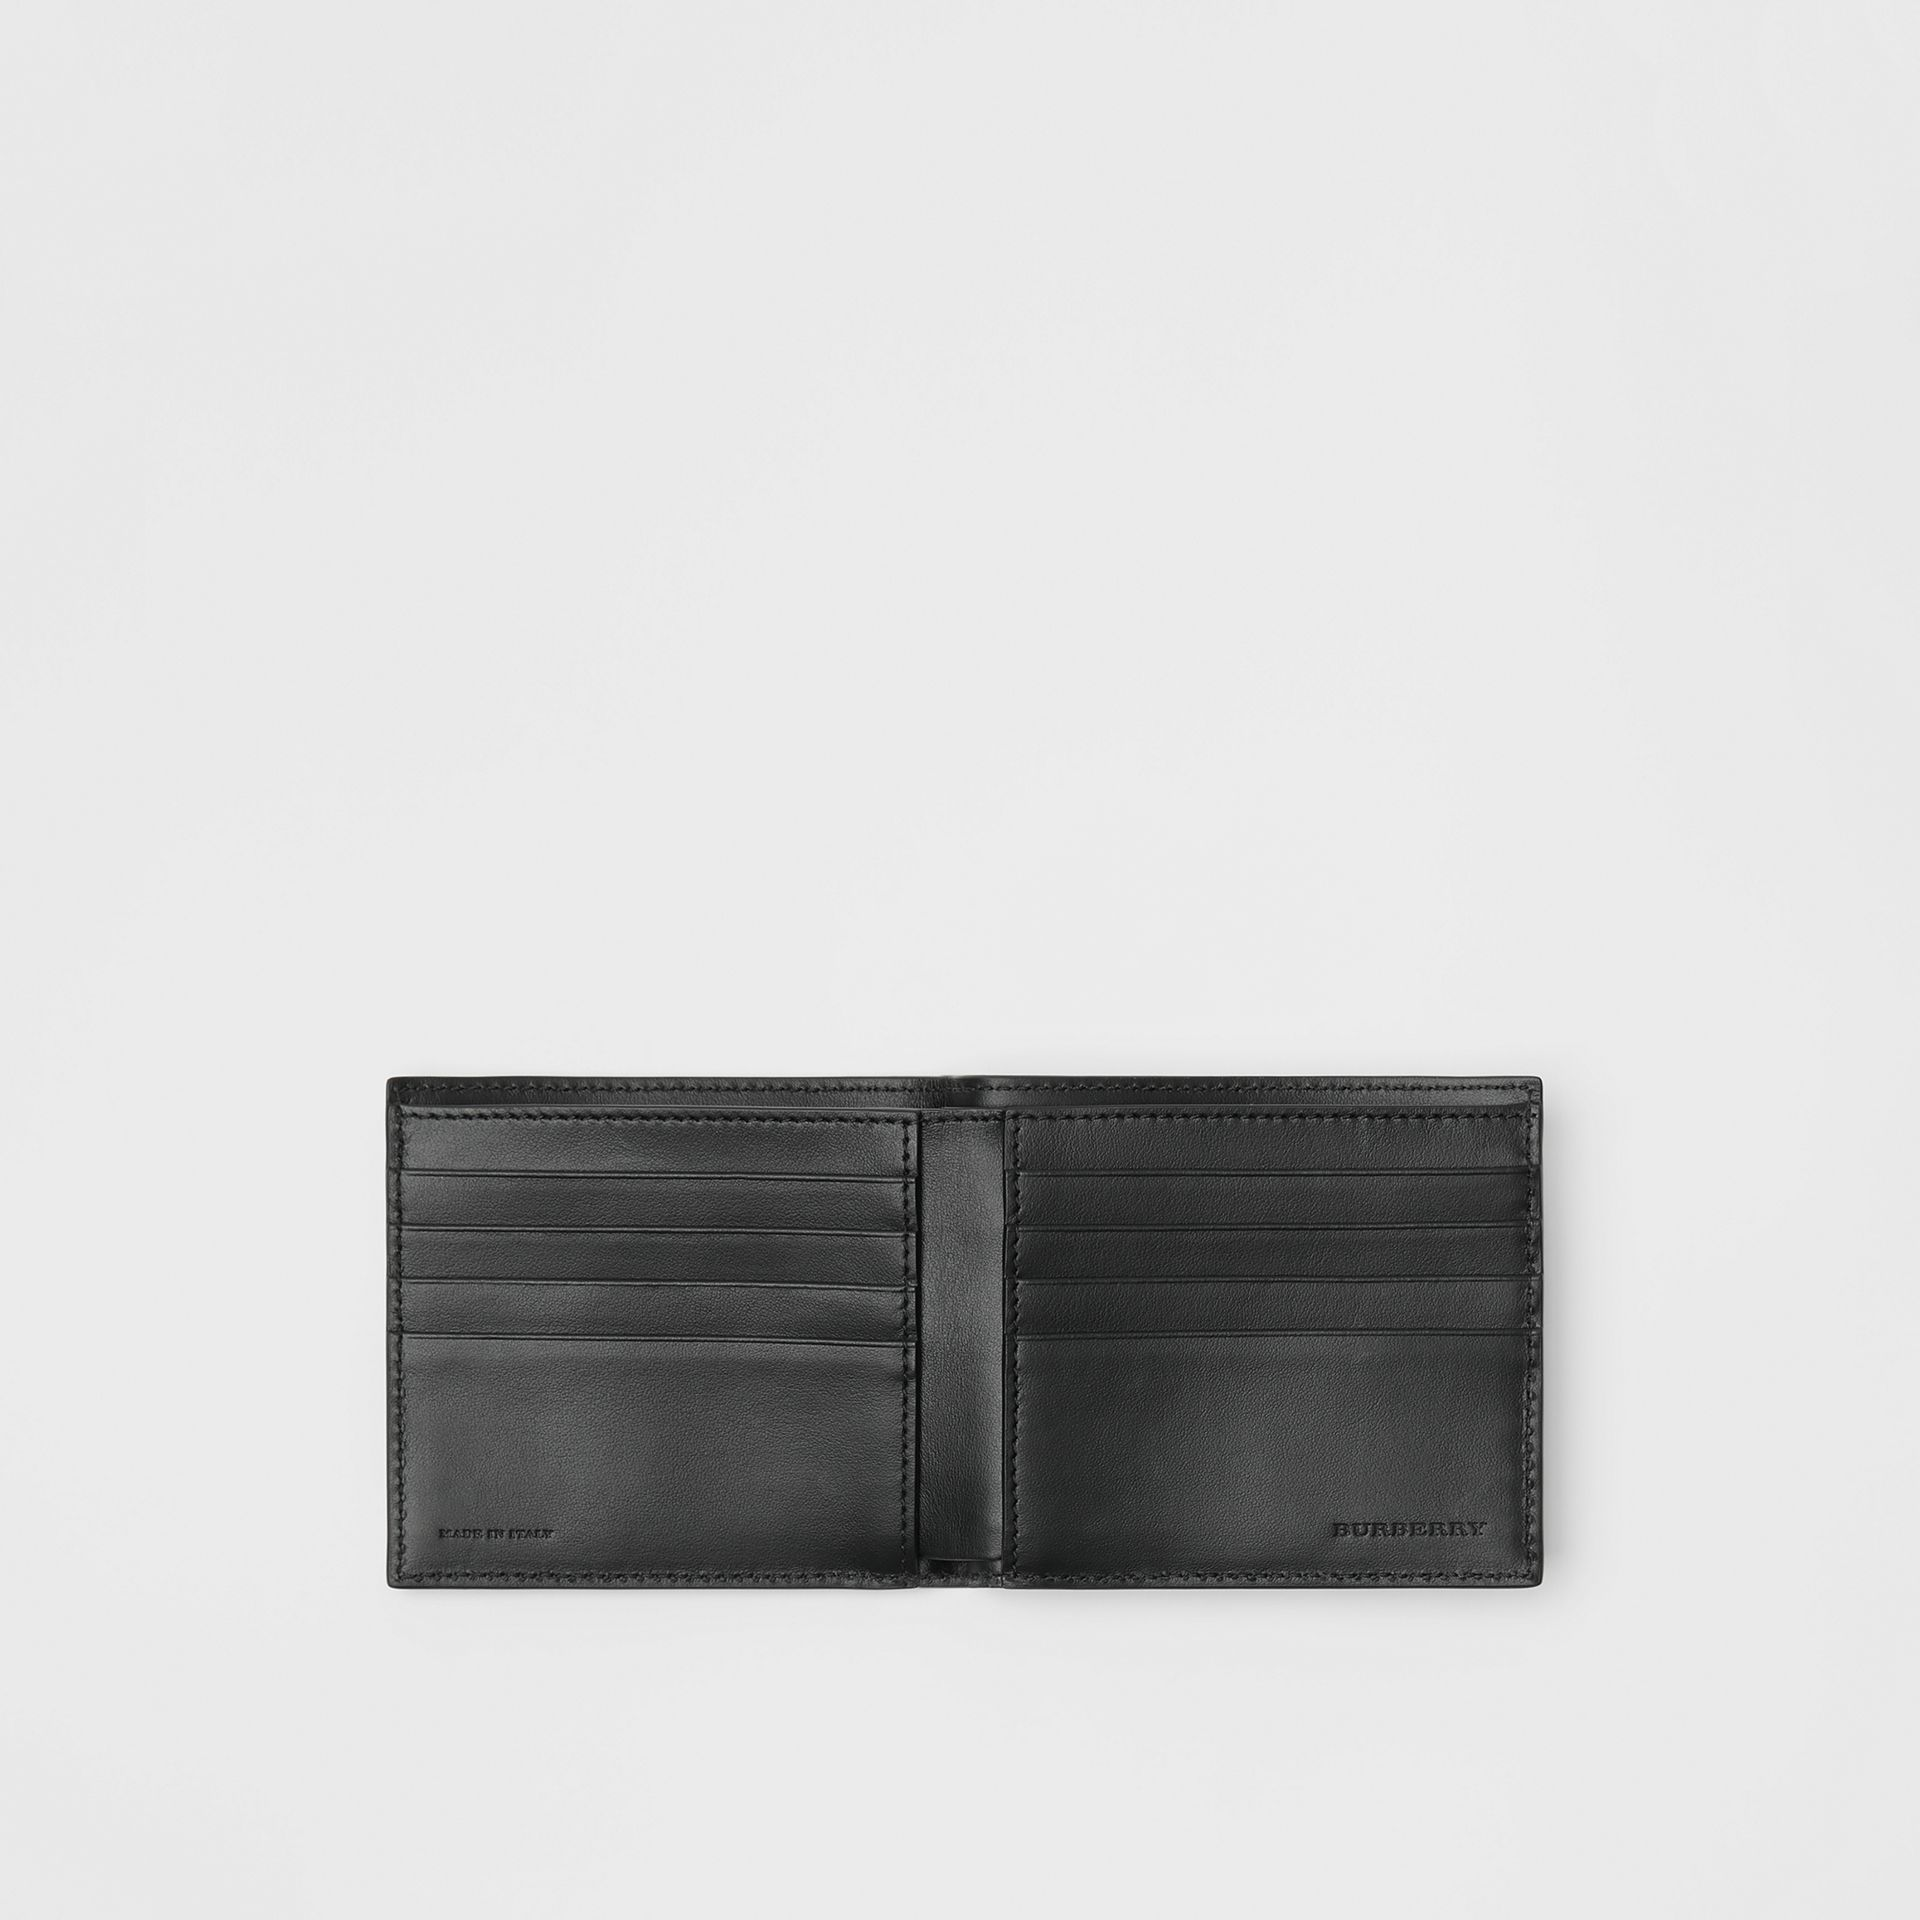 Link Print Leather International Bifold Wallet in Black - Men | Burberry Australia - gallery image 2